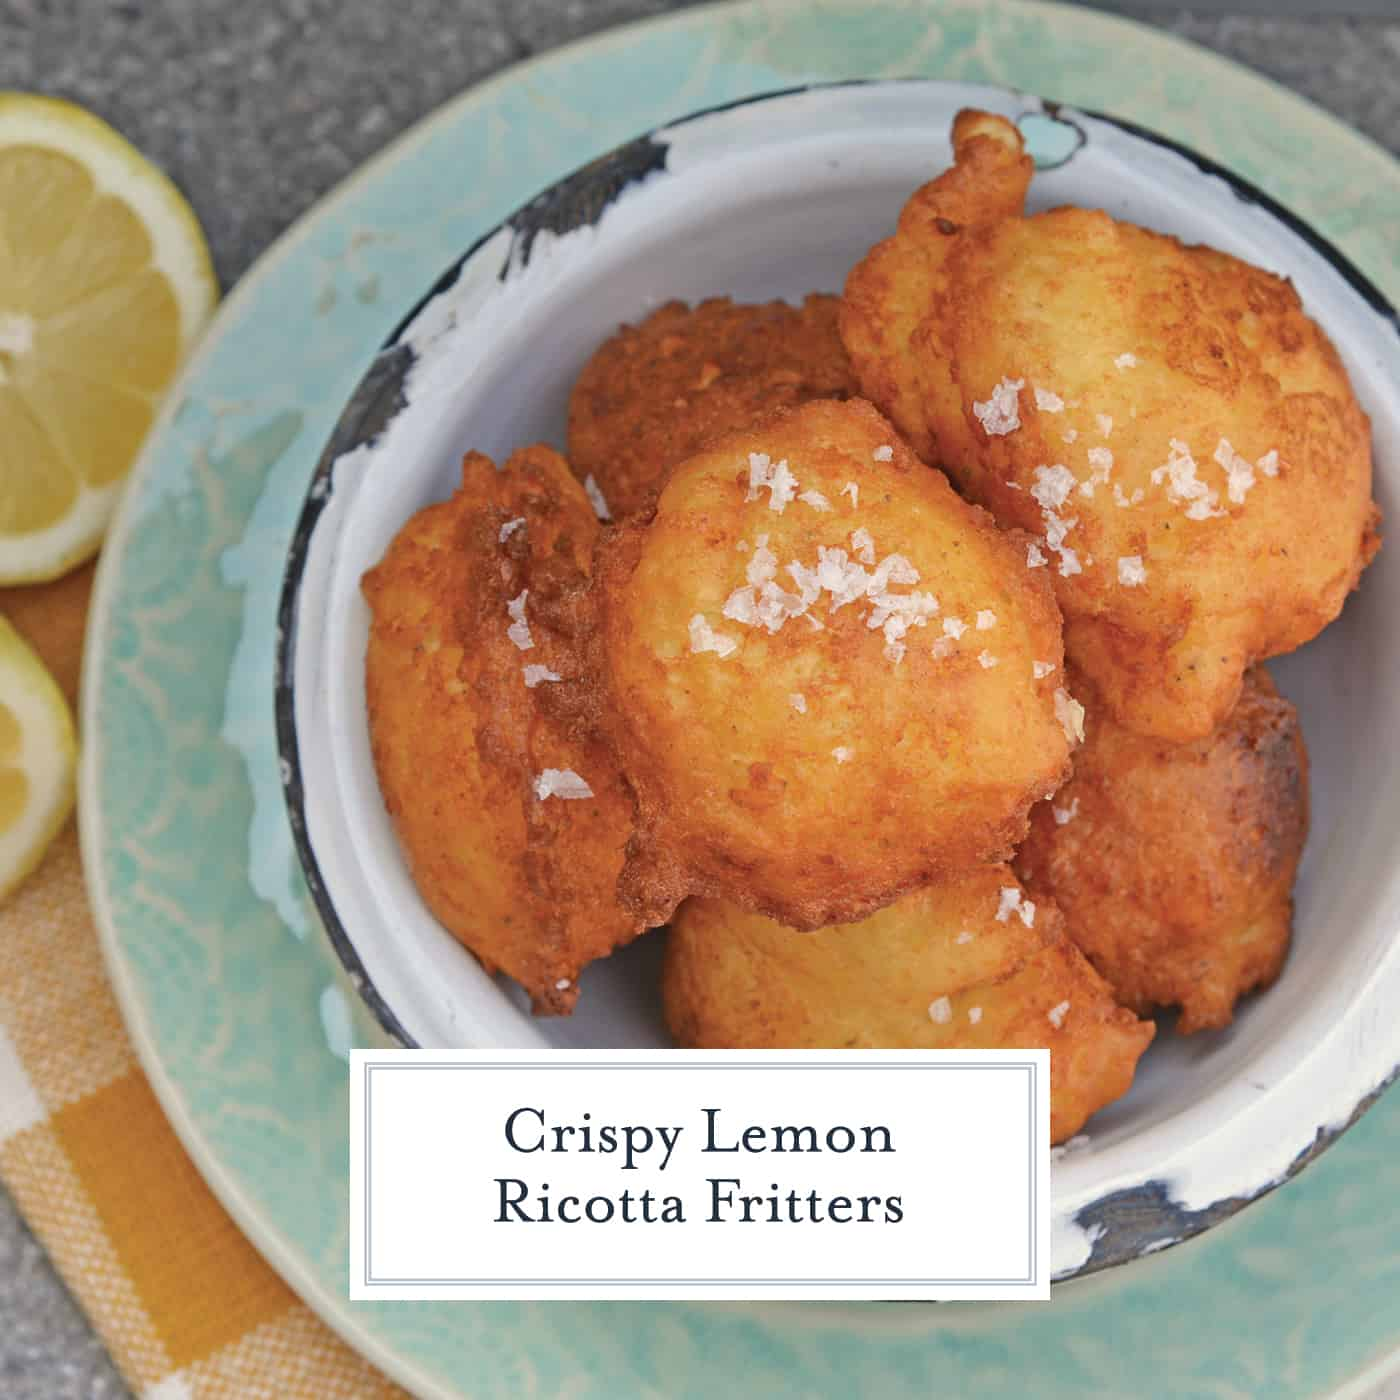 Lemon Ricotta Fritters are a savory fritter recipe. Smooth and rich, they are filled with cheese and a subtle lemon and sage. Served with garlic aioli! #frittersrecipe #ricottafritter www.savoryexperiments.com